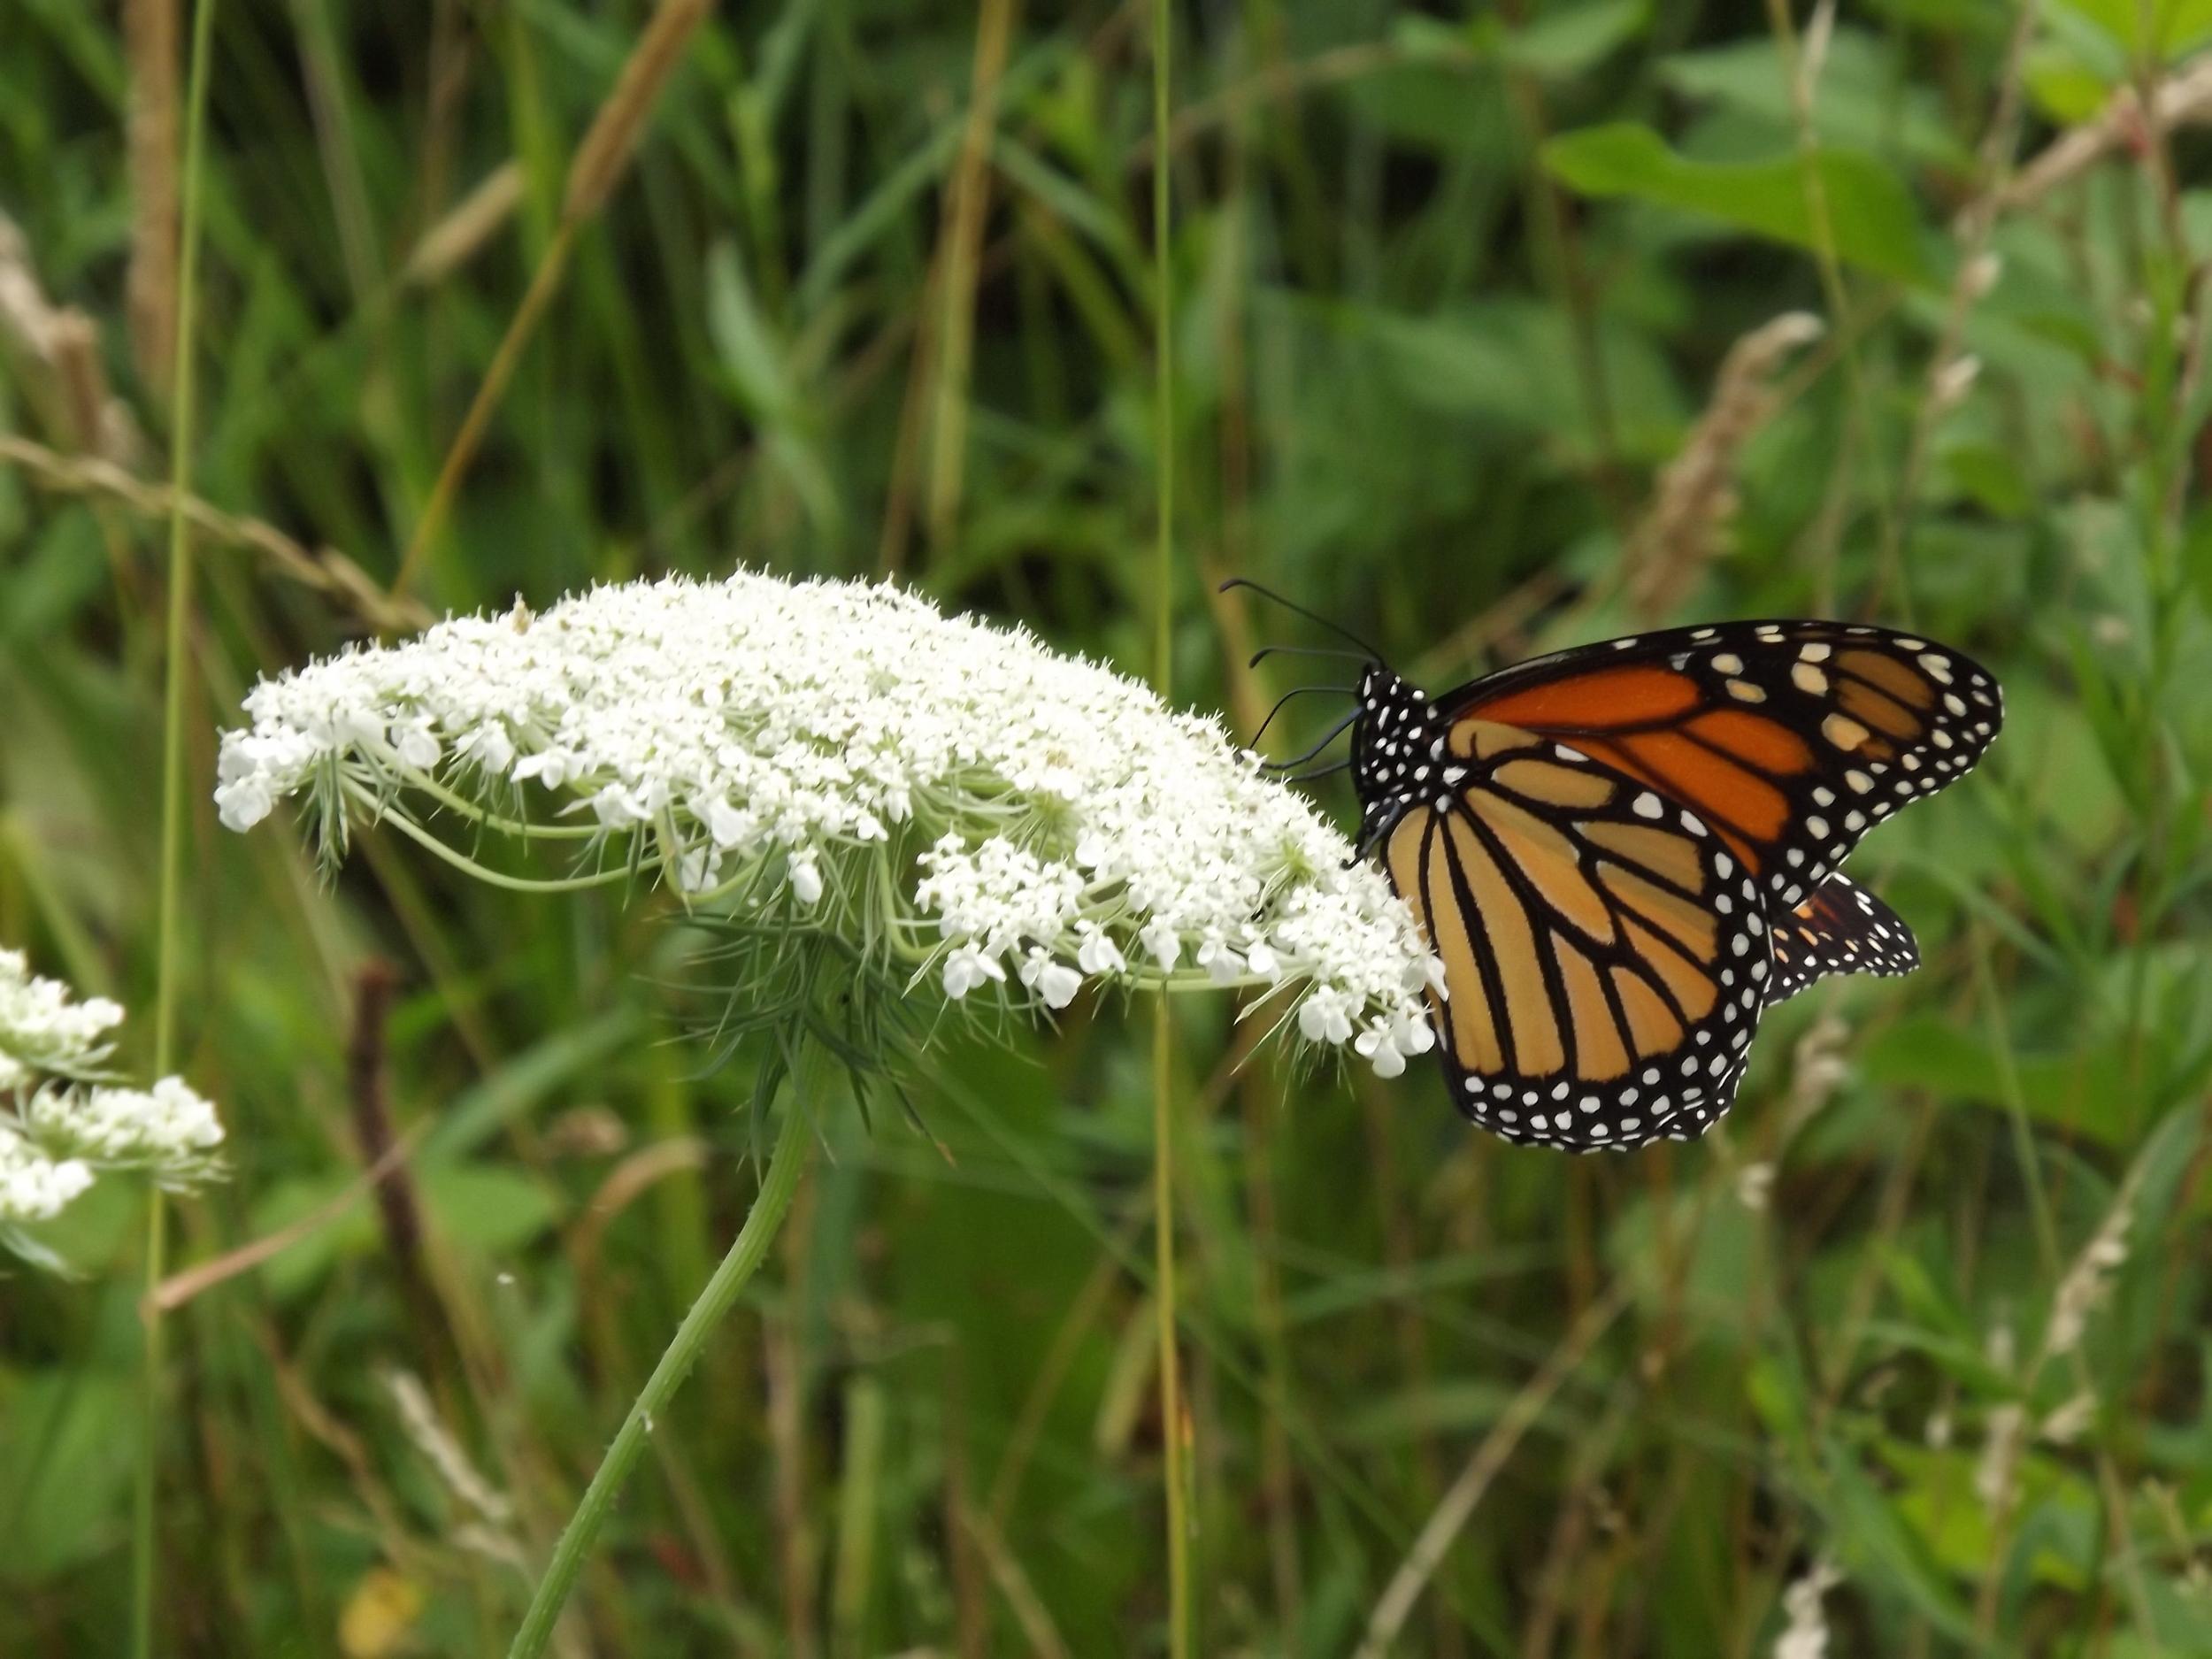 Monarch Butterfly ( Danaus plexippus ) on Queen Anne's Lace ( Daucus carota ) - I was happy to get this great photograph of a female Monarch butterfly feeding on a Queen Anne's Lace flower cluster. Butterflies are hard to photograph since they are constantly moving so I was pleased with this shot. Also, I recently read that Queen Anne's Lace is also known as Wild Carrot.